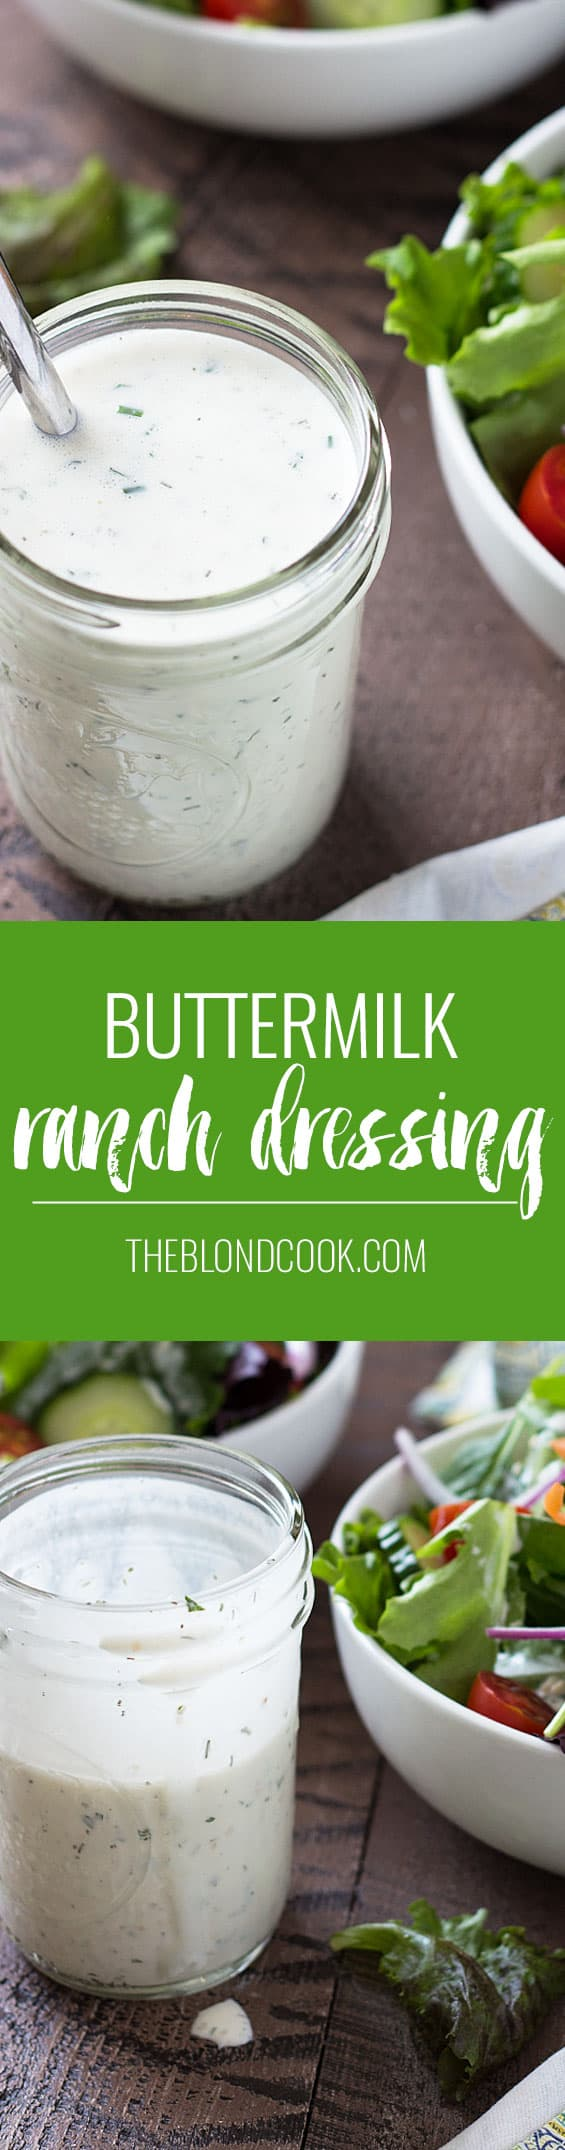 Homemade Buttermilk Ranch Dressing - With just a few ingredients, you can make the easiest and most flavorful ranch dressing!